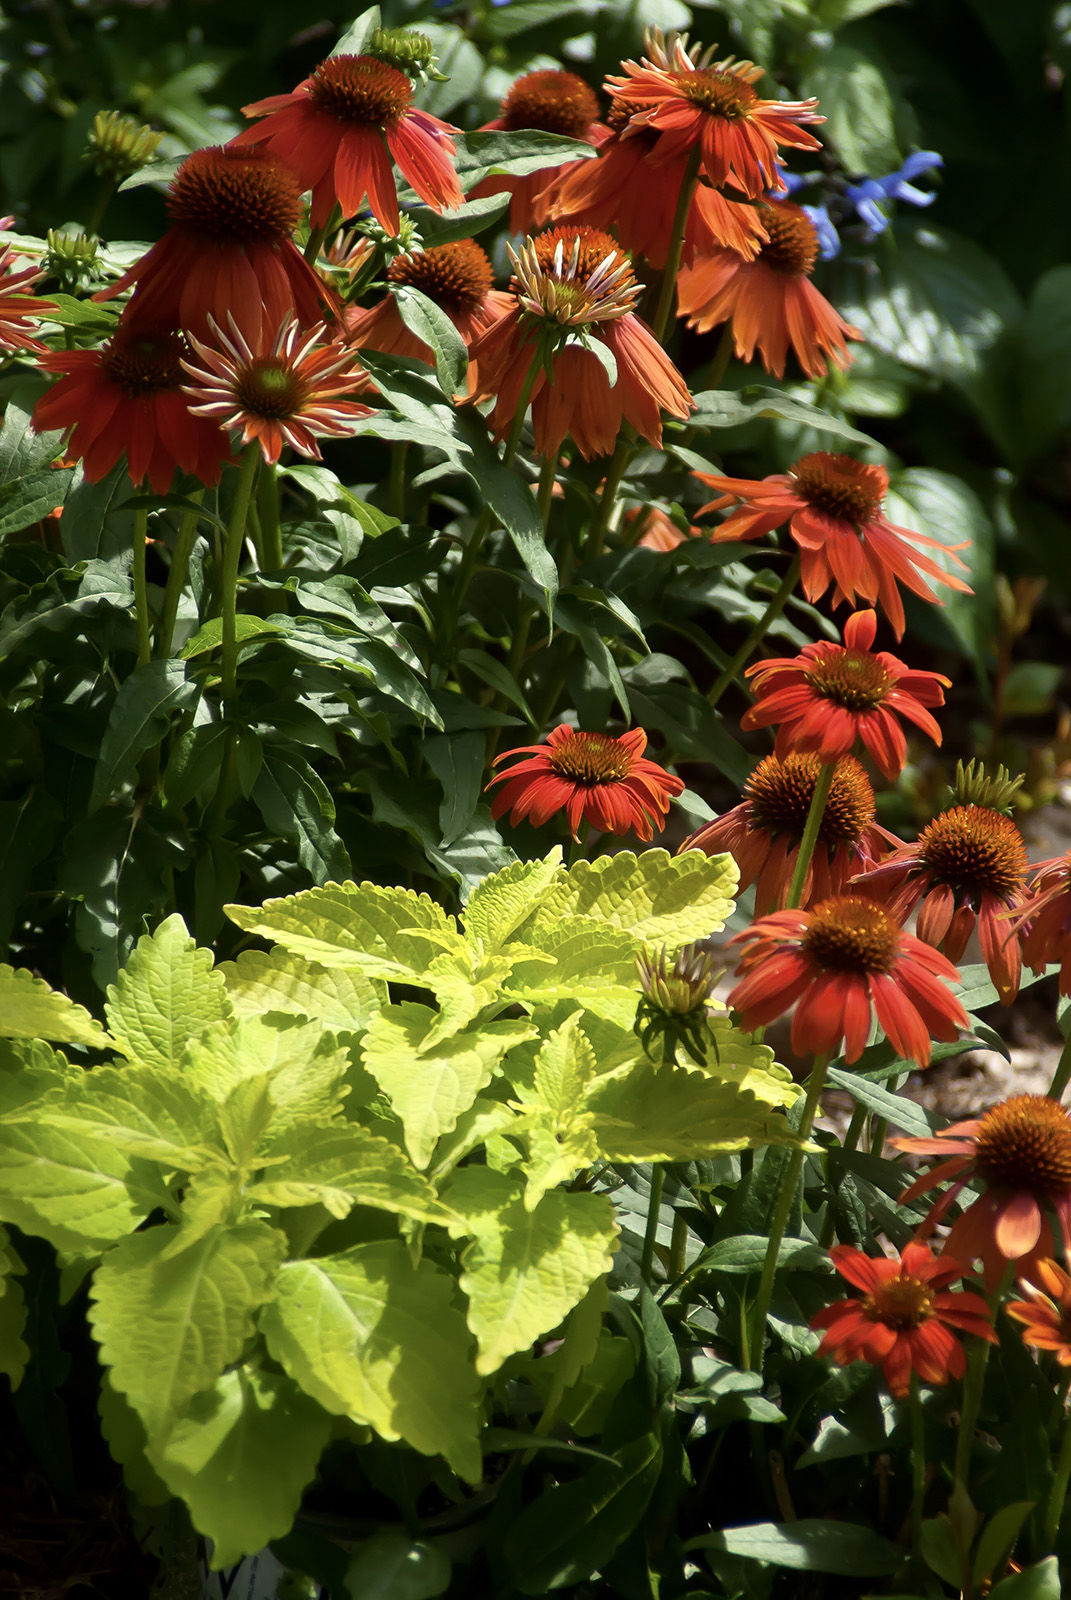 FAB FOLIAGE It's a 'wonderfully wicked' year for colorful coleus